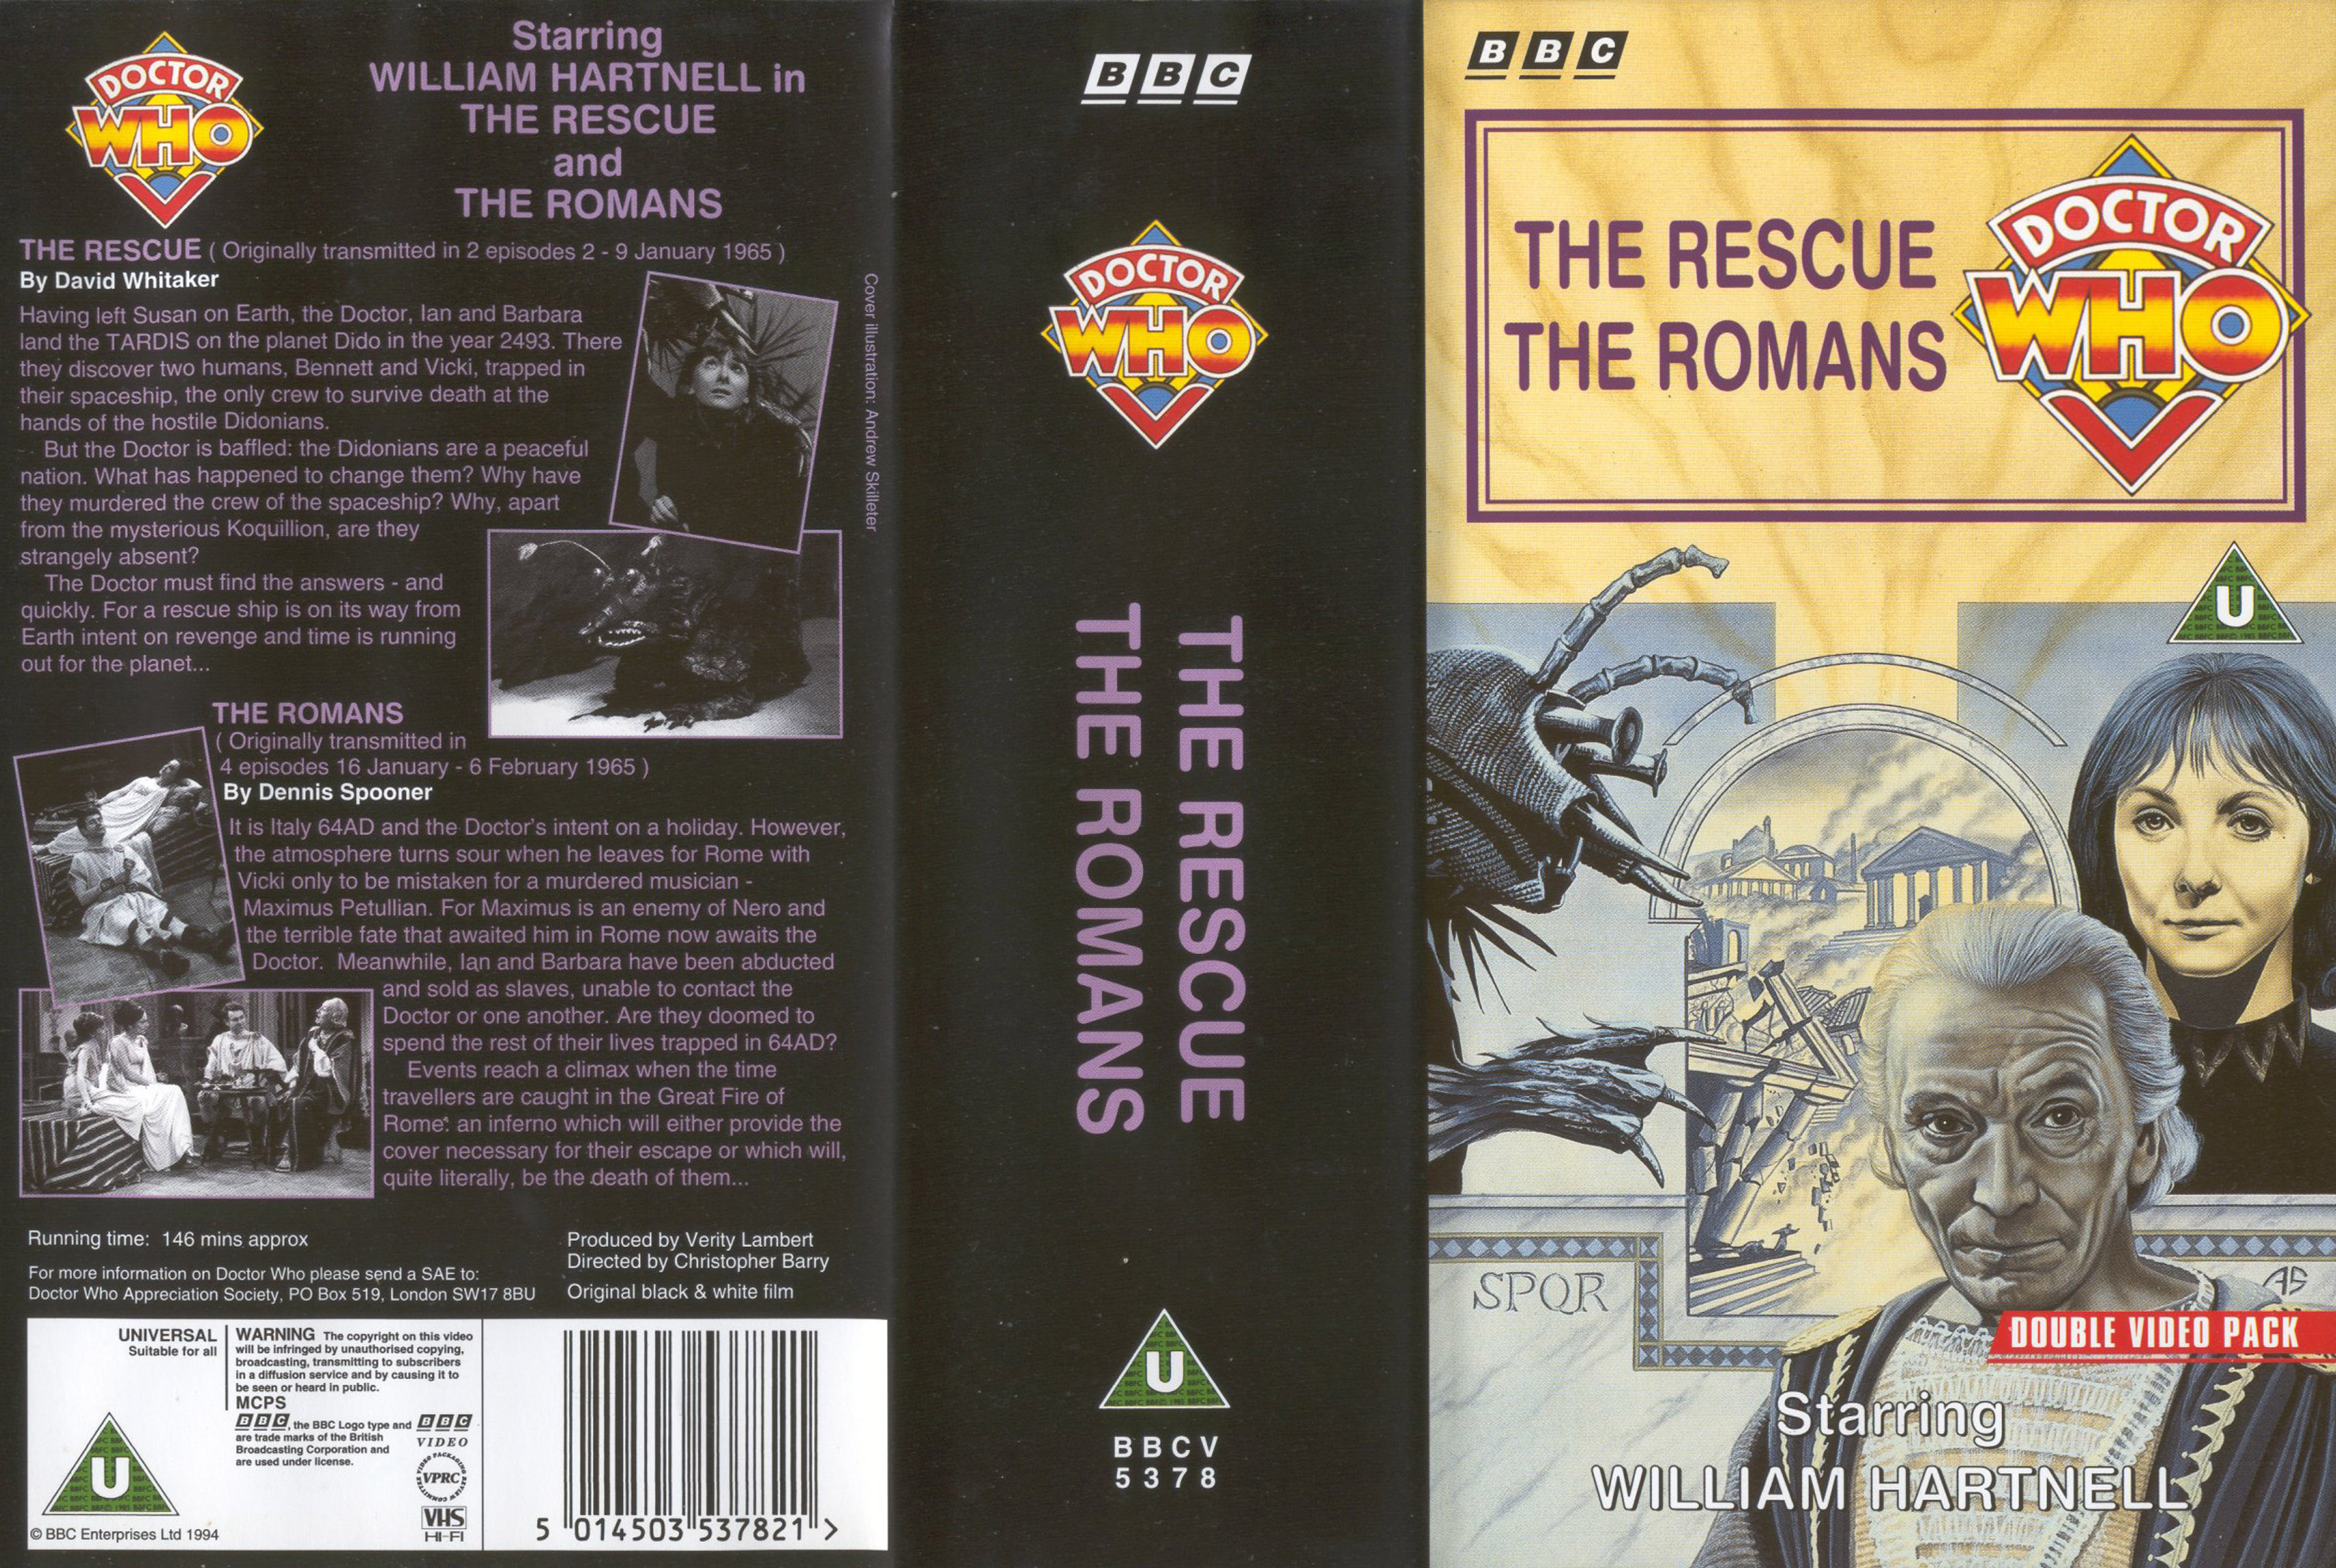 The Rescue and The Romans VHS